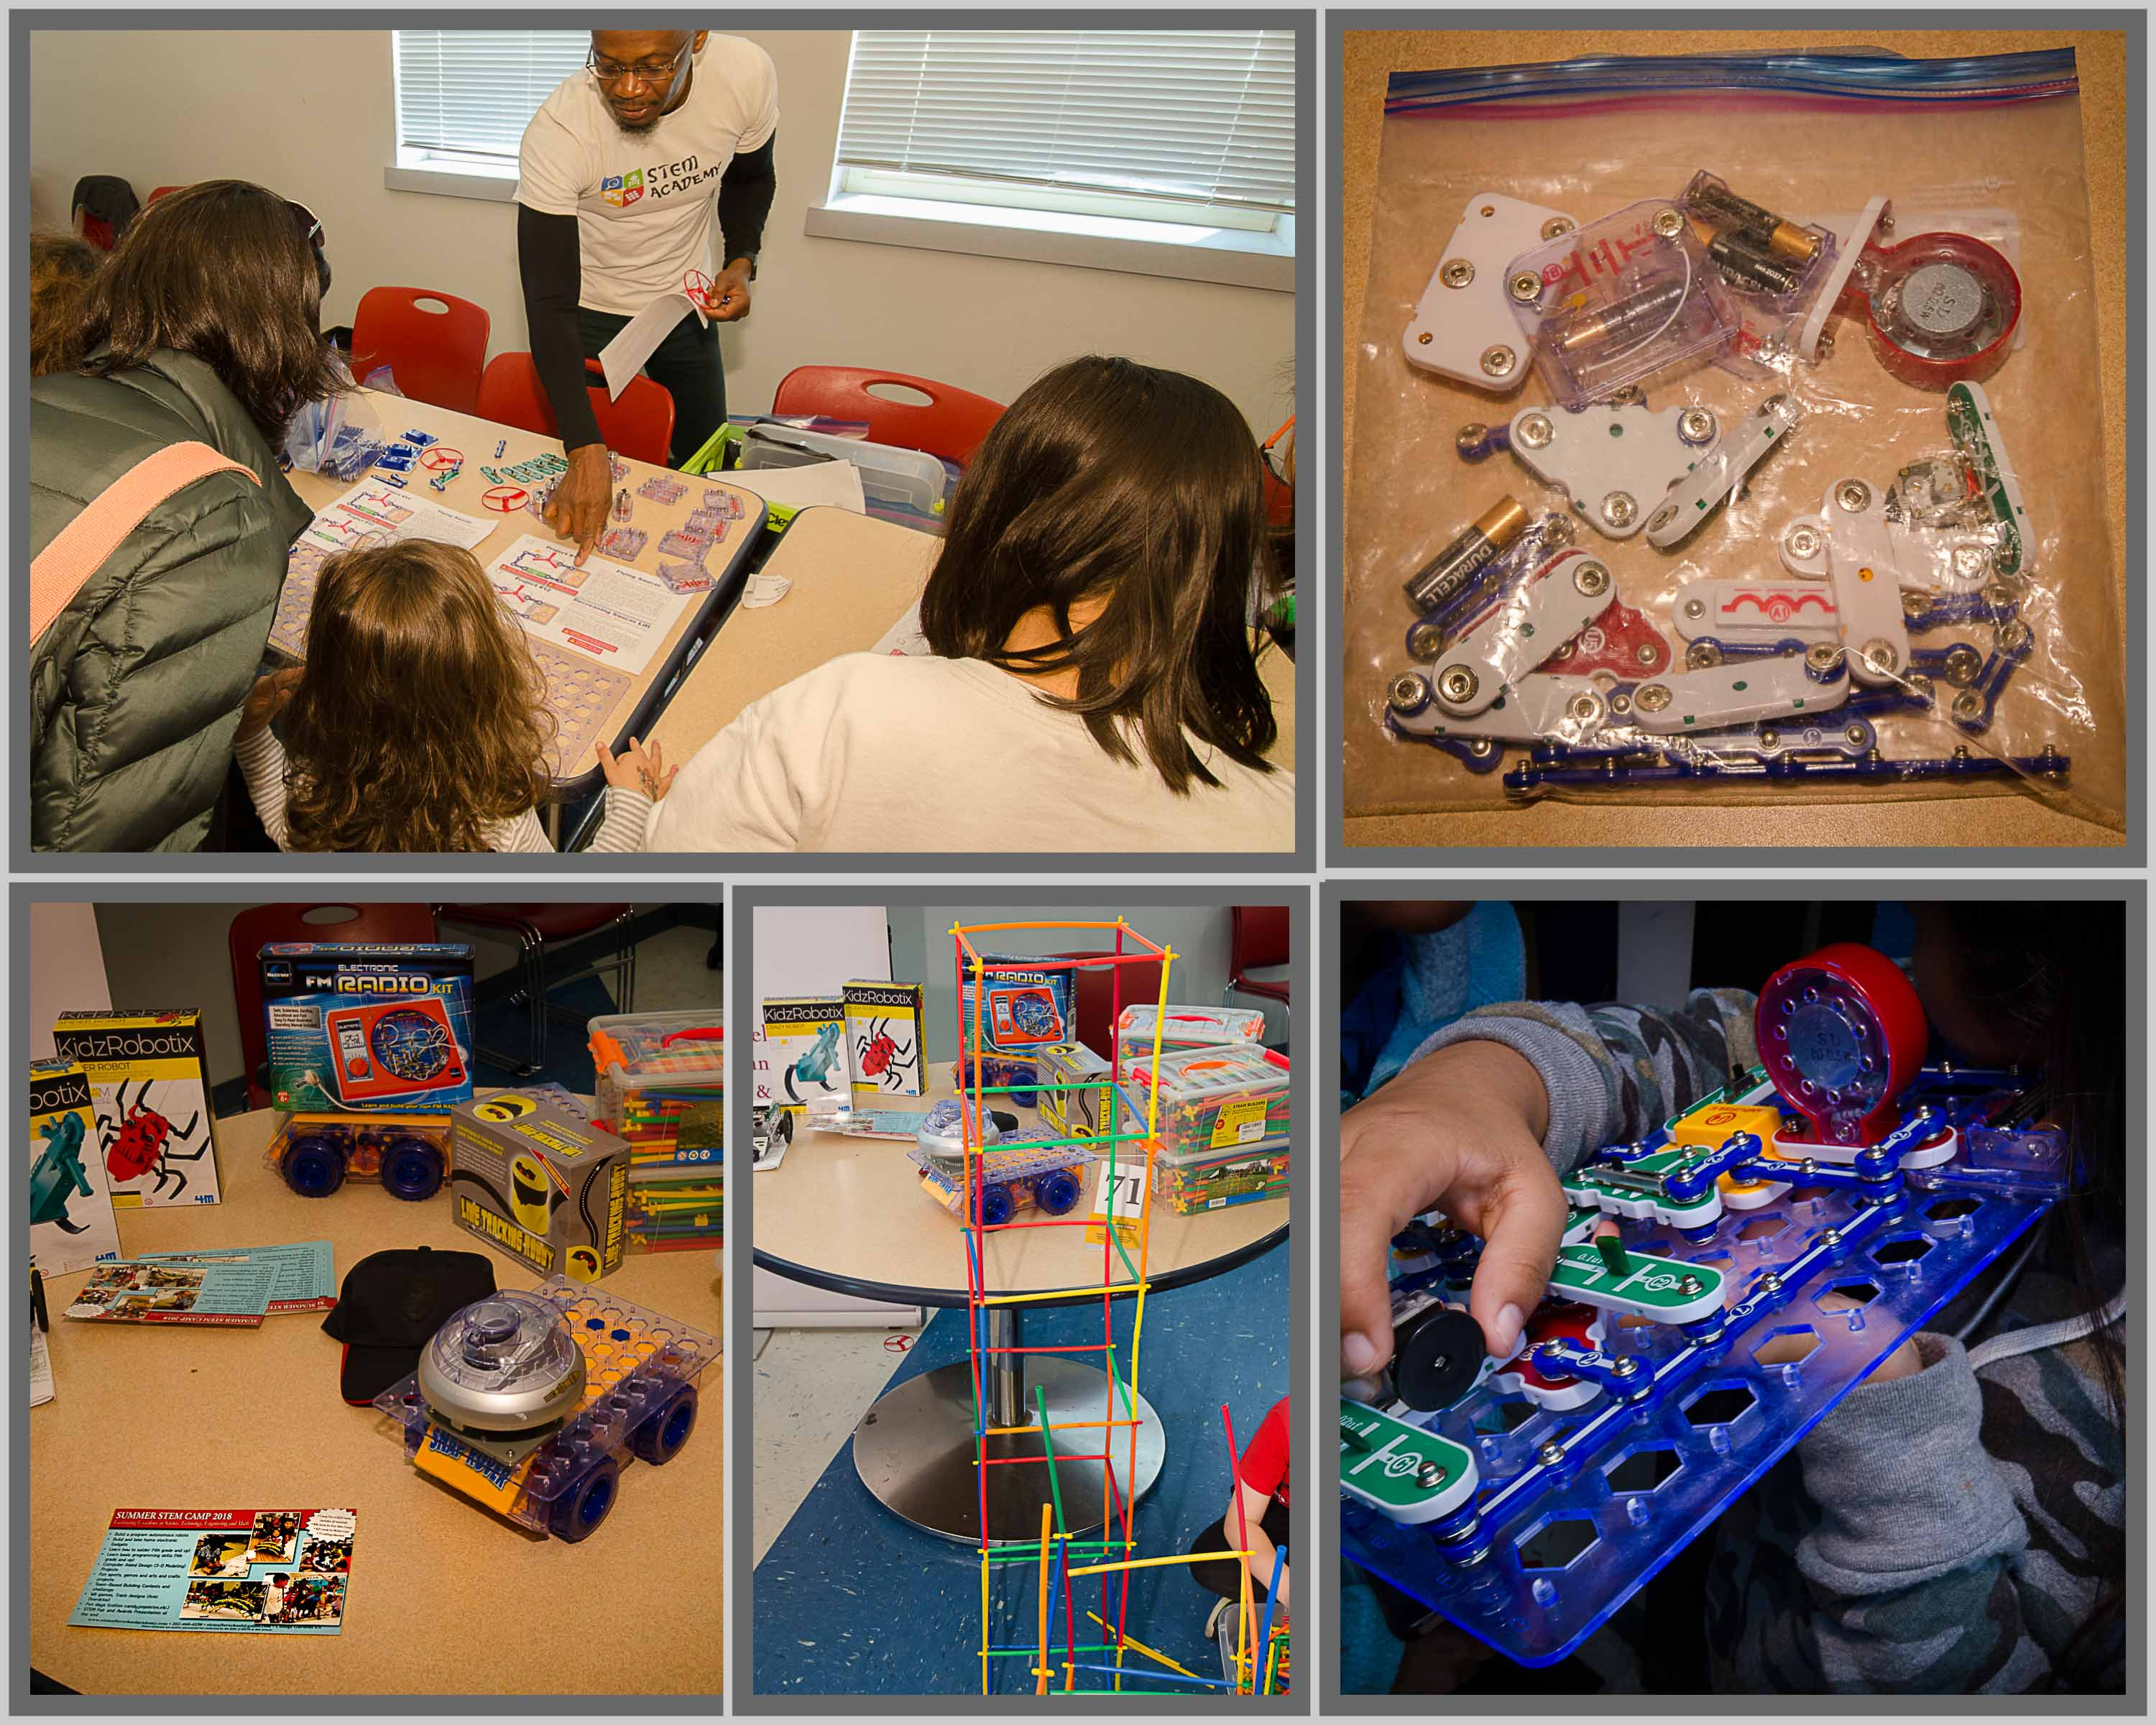 Collage of pictures of kids enjoying building things and table of STEM kits